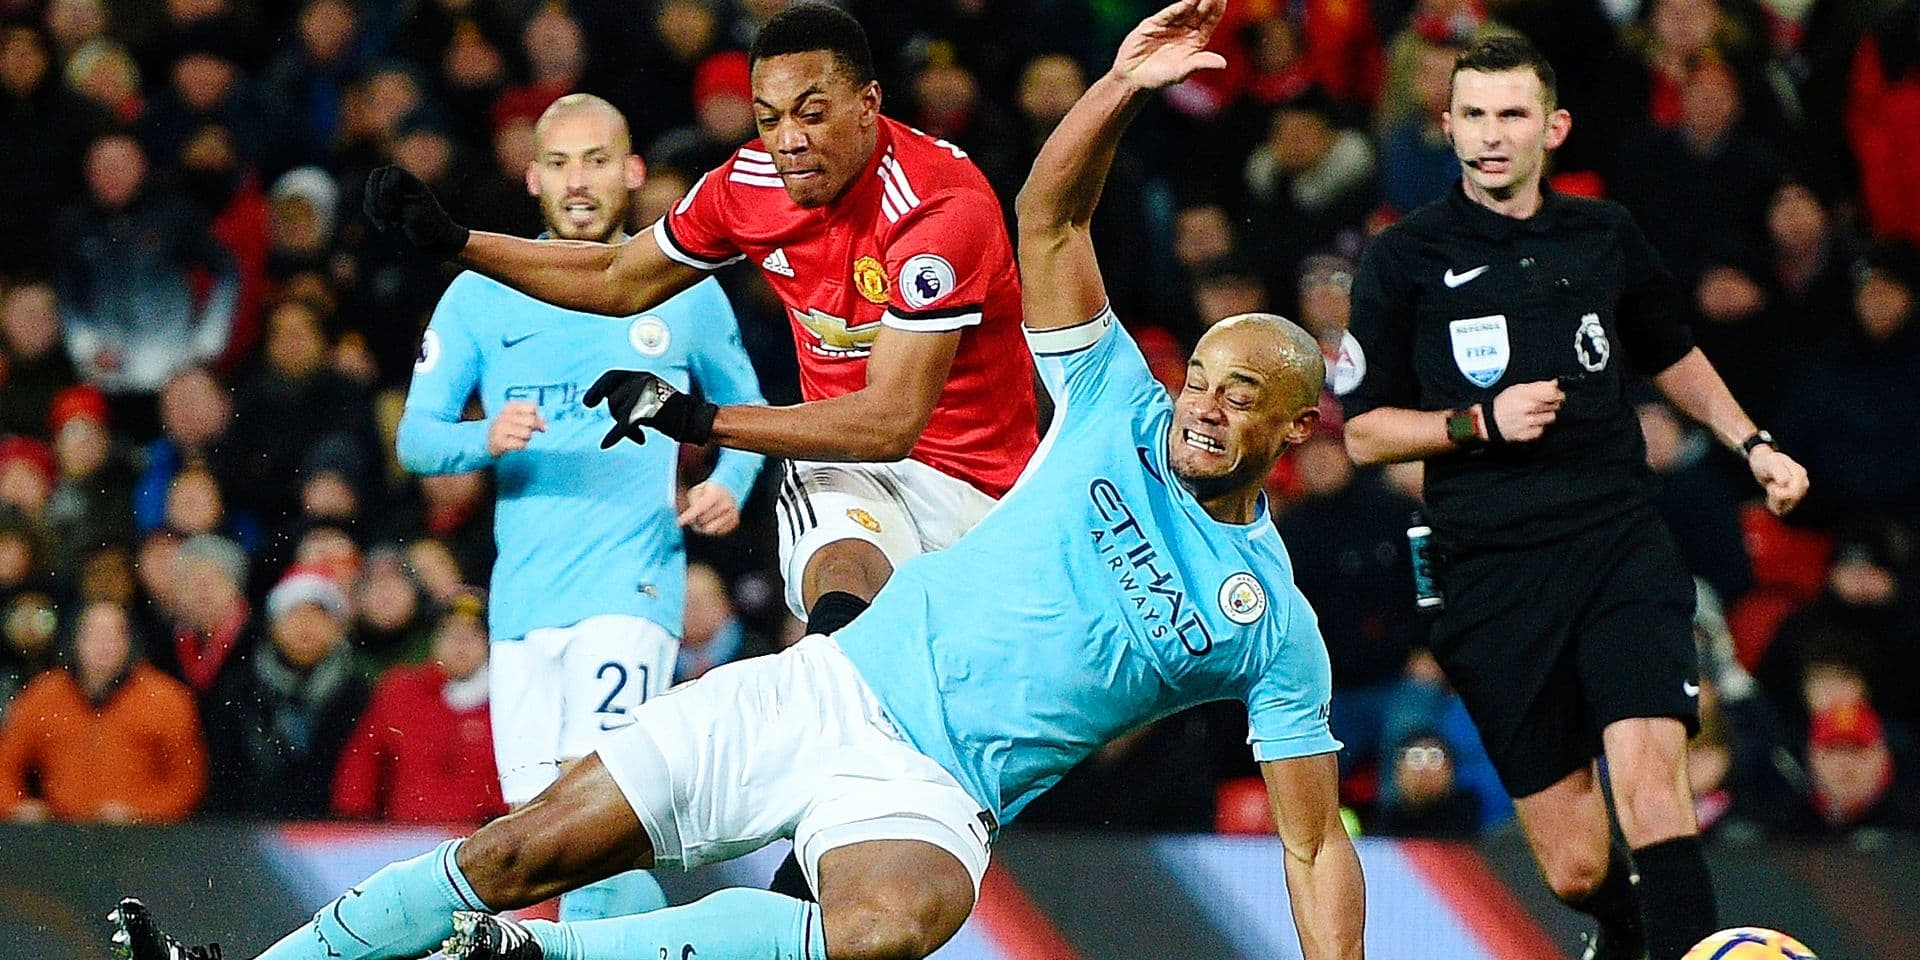 Manchester City's Belgian defender Vincent Kompany (R) dives across to block a shot from Manchester United's French striker Anthony Martial (L) during the English Premier League football match between Manchester United and Manchester City at Old Trafford in Manchester, north west England, on December 10, 2017. / AFP PHOTO / Oli SCARFF / RESTRICTED TO EDITORIAL USE. No use with unauthorized audio, video, data, fixture lists, club/league logos or 'live' services. Online in-match use limited to 75 images, no video emulation. No use in betting, games or single club/league/player publications. /